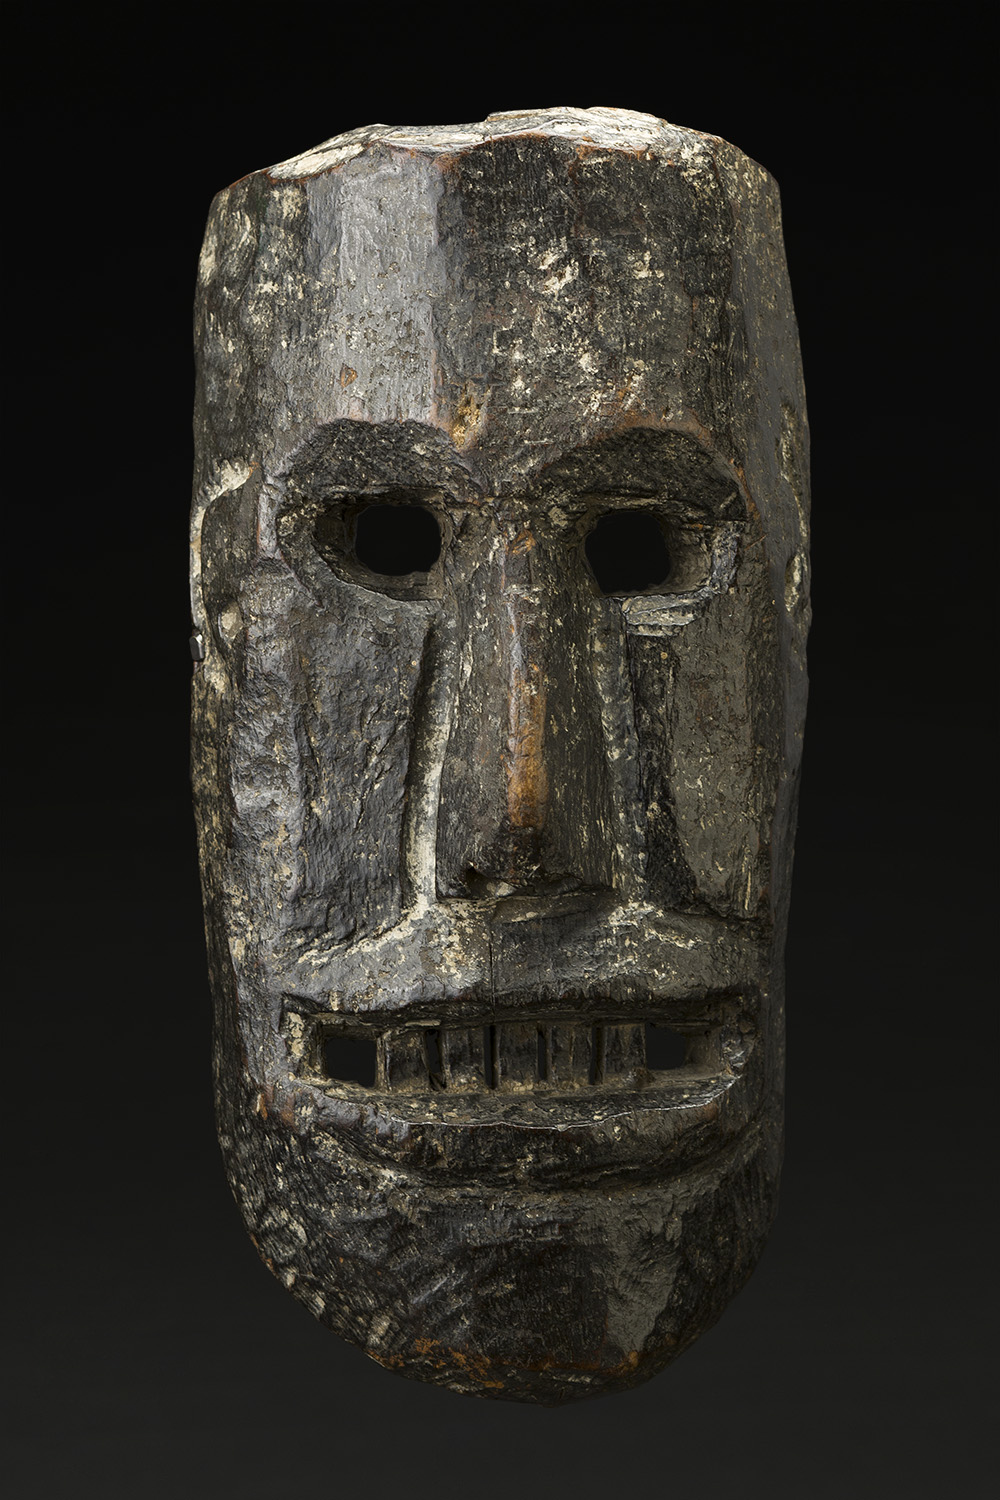 Masks    Nepal  , Early 20th C. Wood 11.75 x 5.75 x 3 inches 29.8 x 14.6 x 7.6 cm M 224s